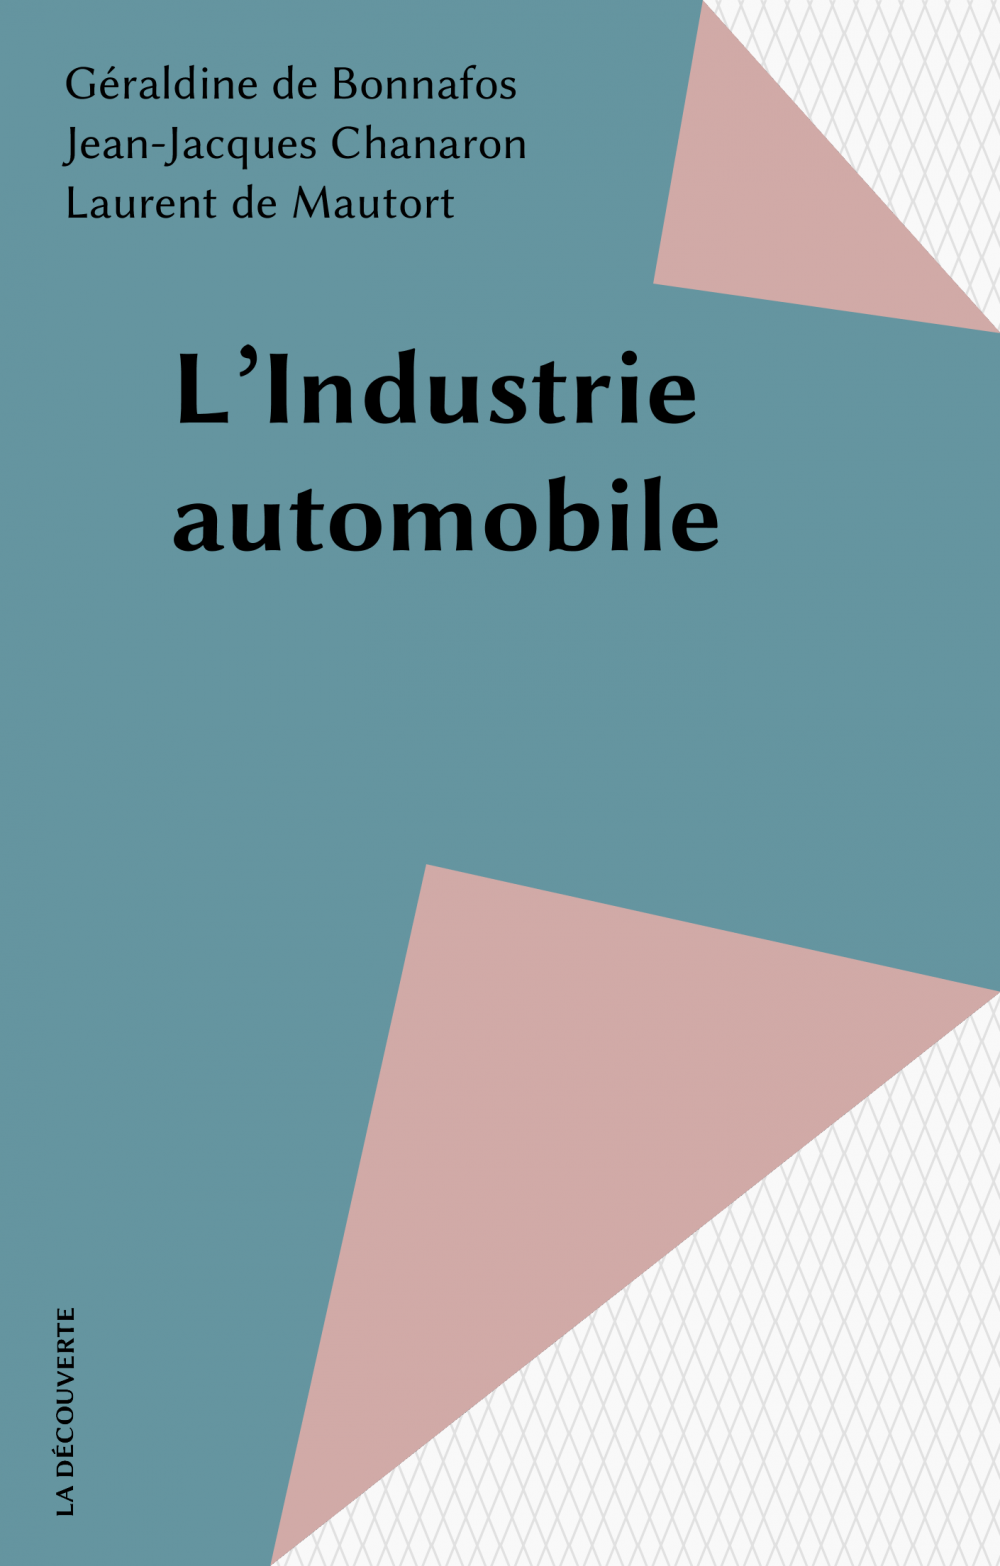 L'Industrie automobile